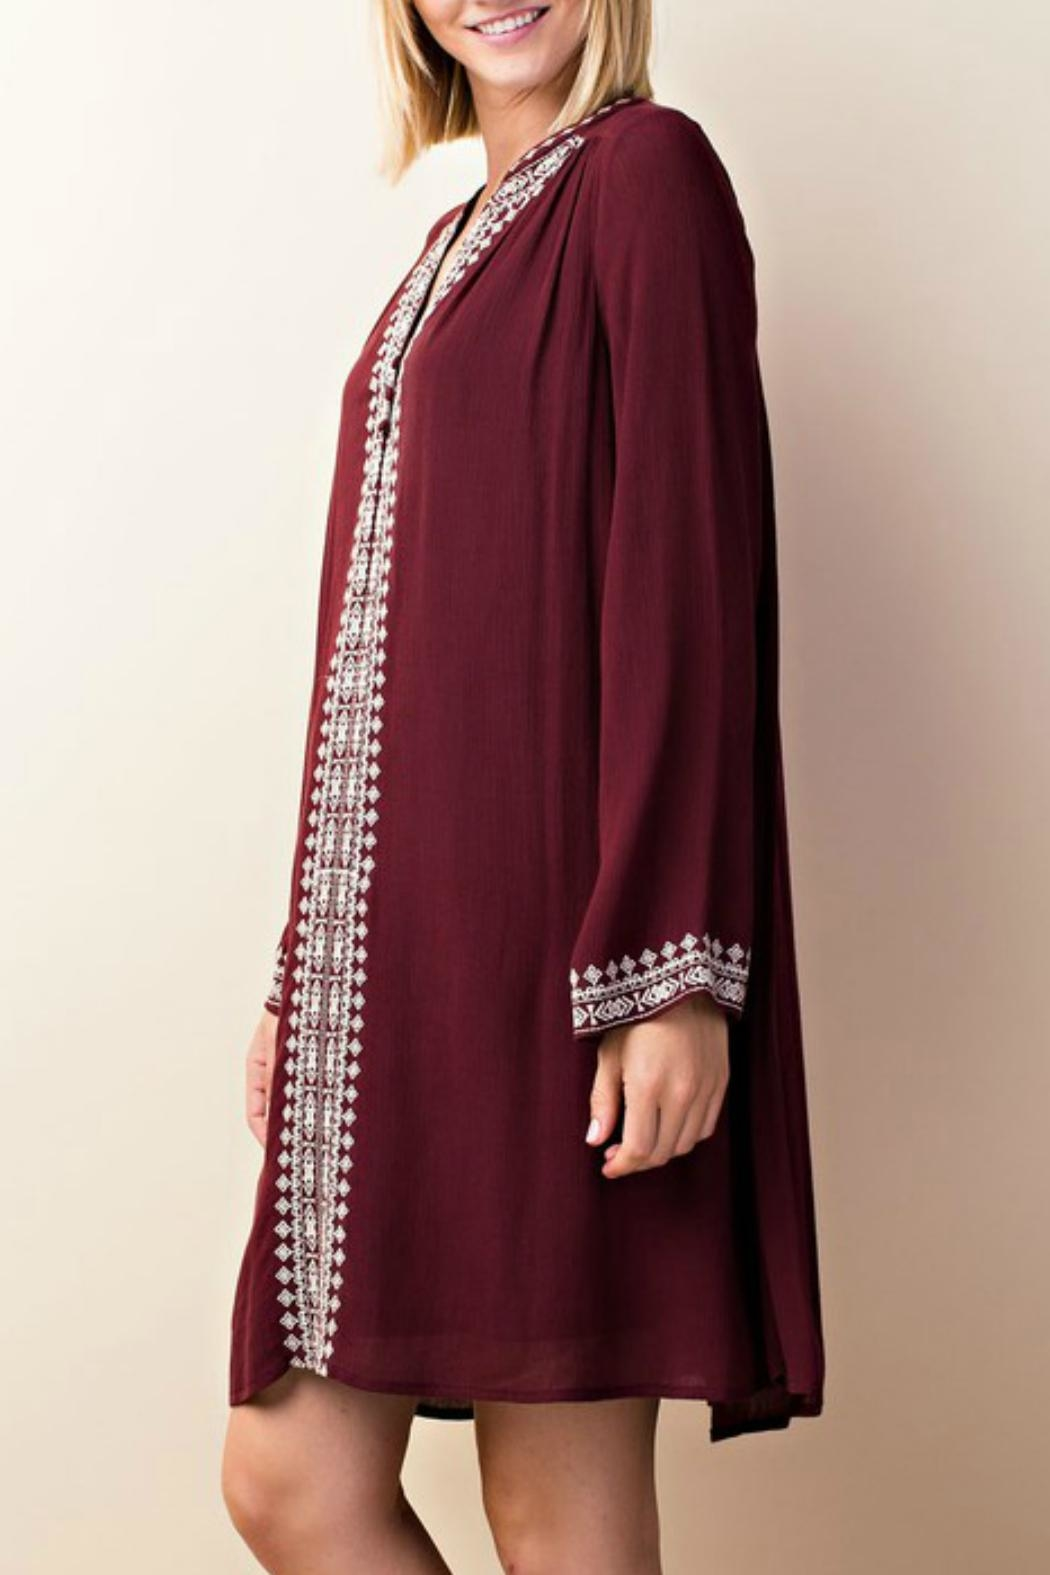 LLove USA Embroidered Burgundy Dress - Side Cropped Image